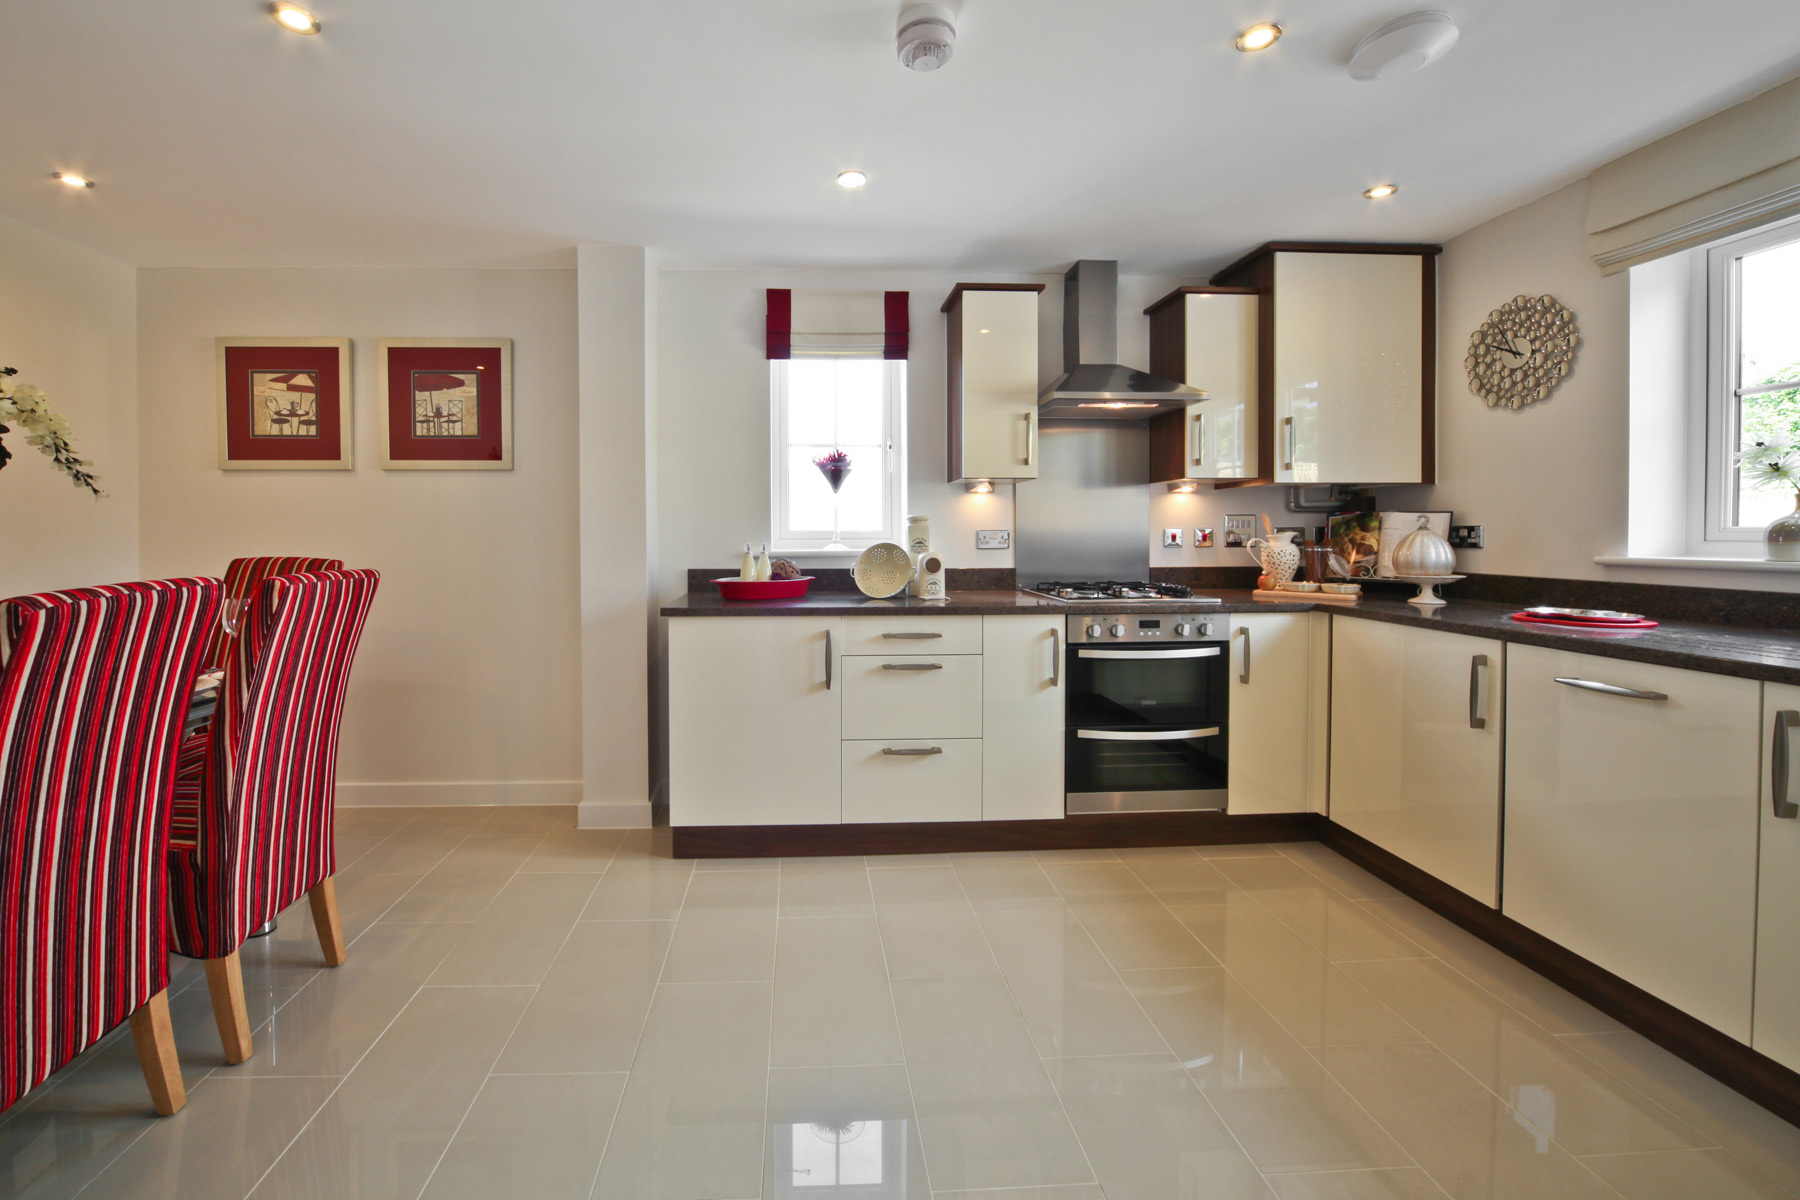 A typical Taylor Wimpey kitchen dining area.